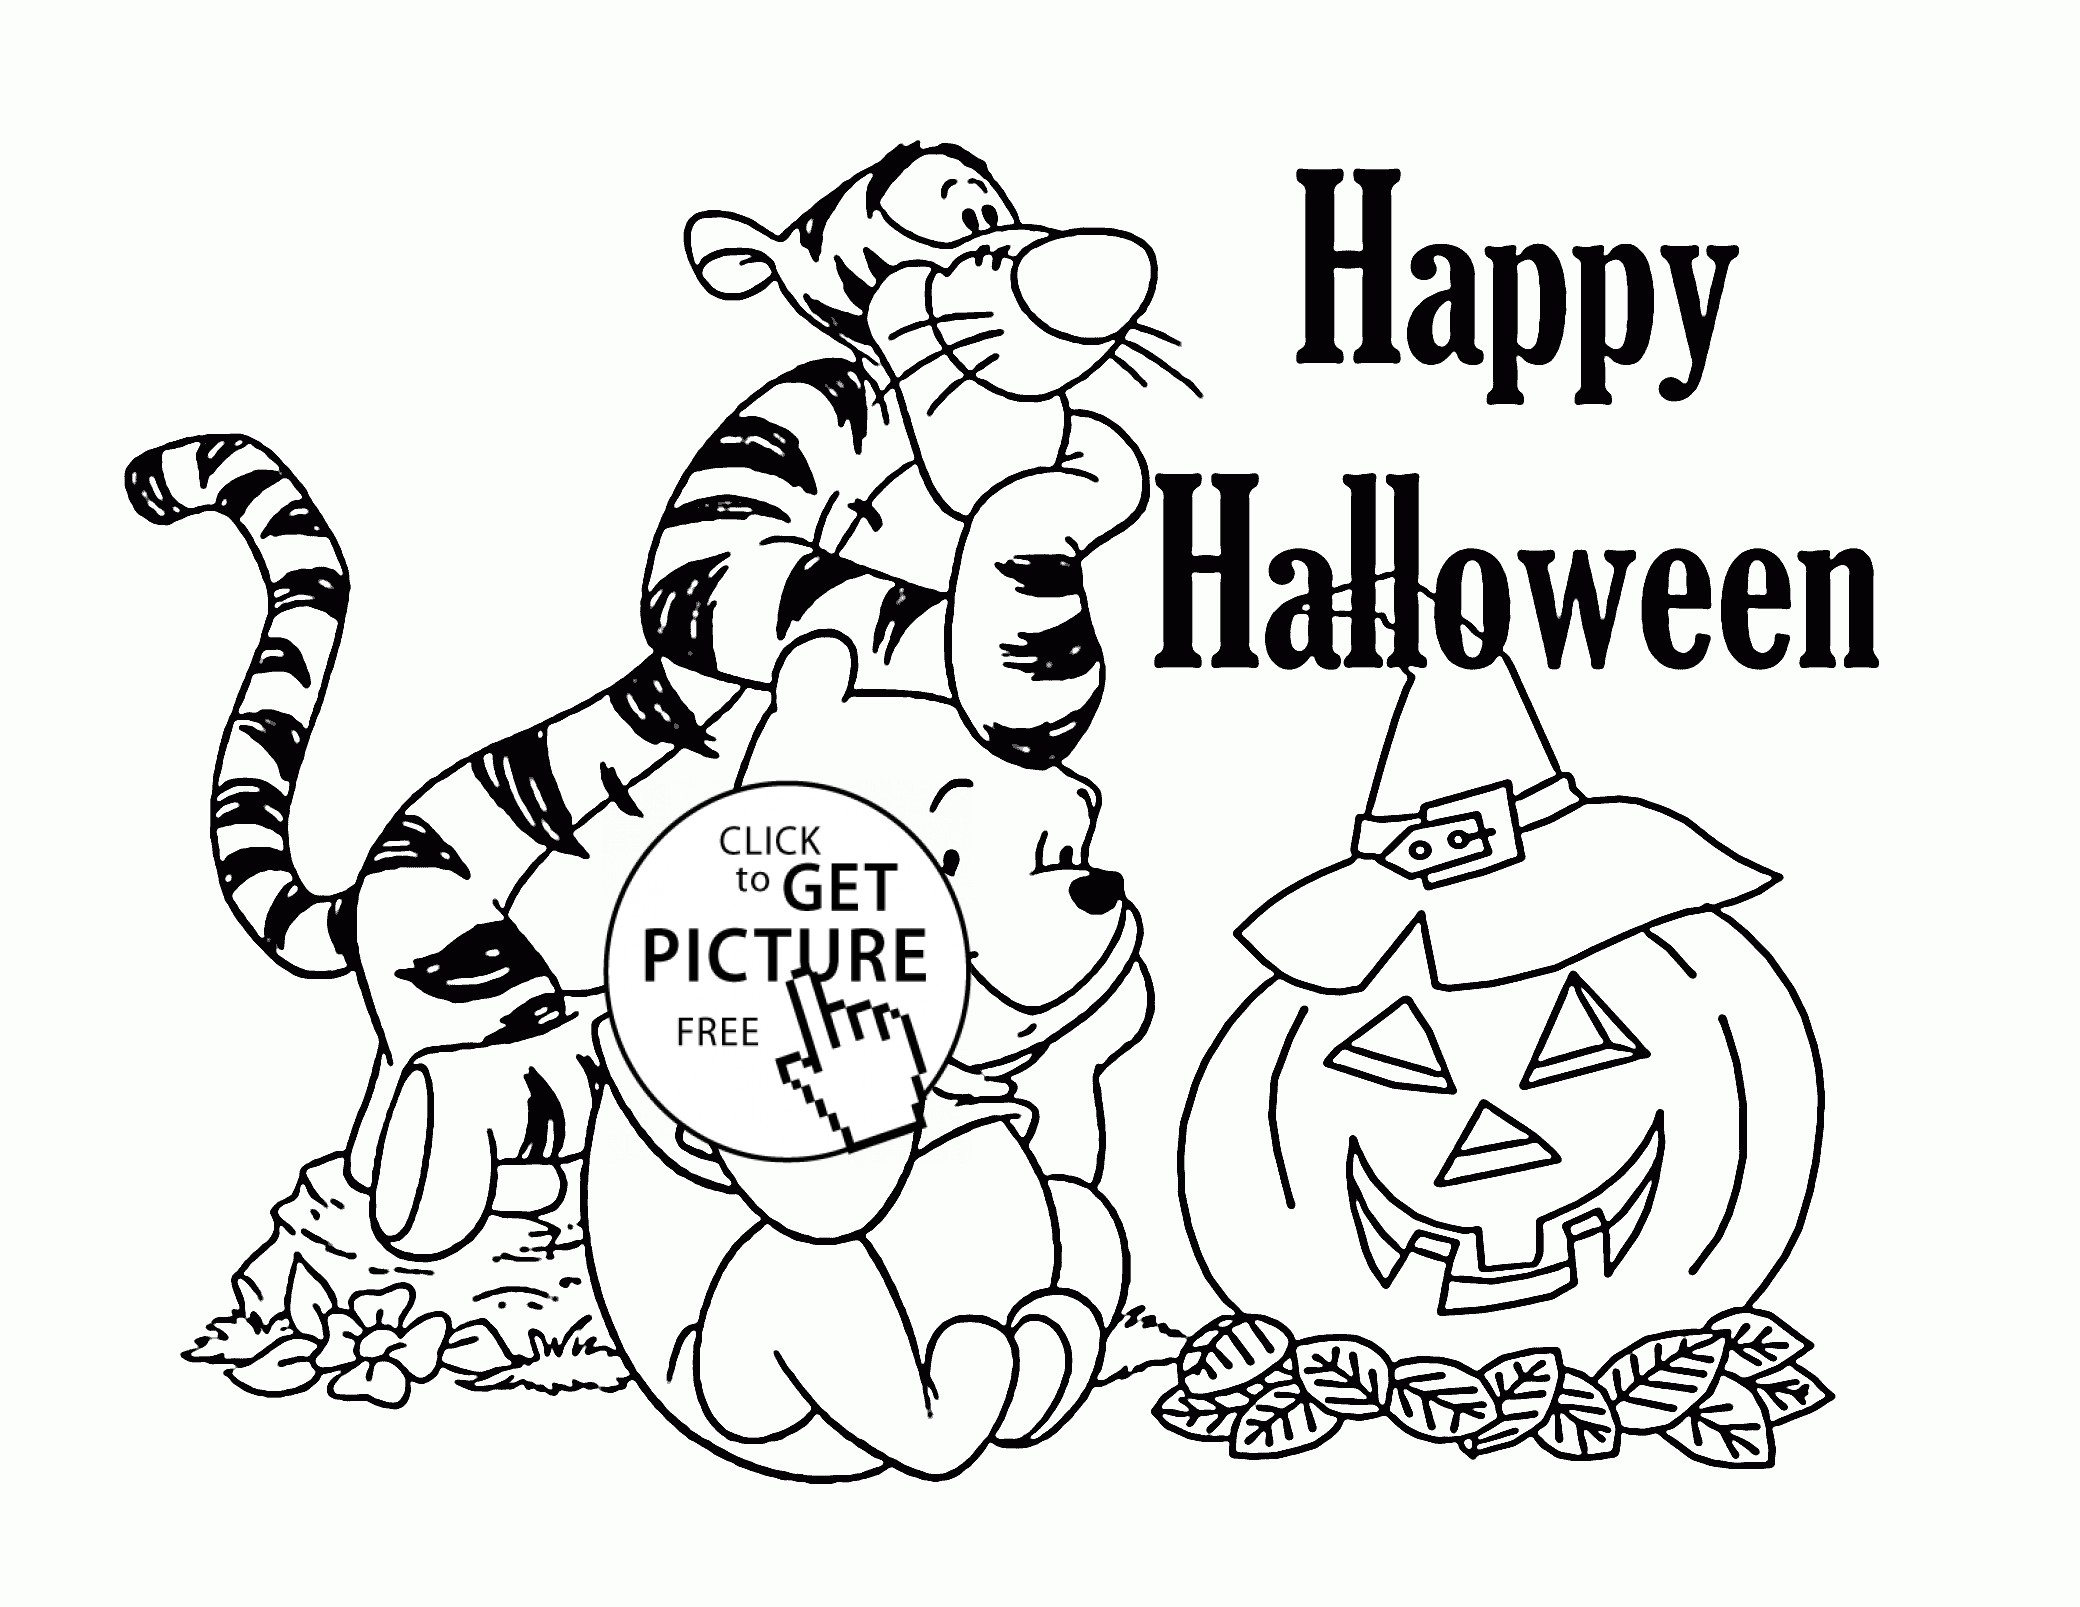 Paw Patrol Coloring Pages Halloween At Getcolorings